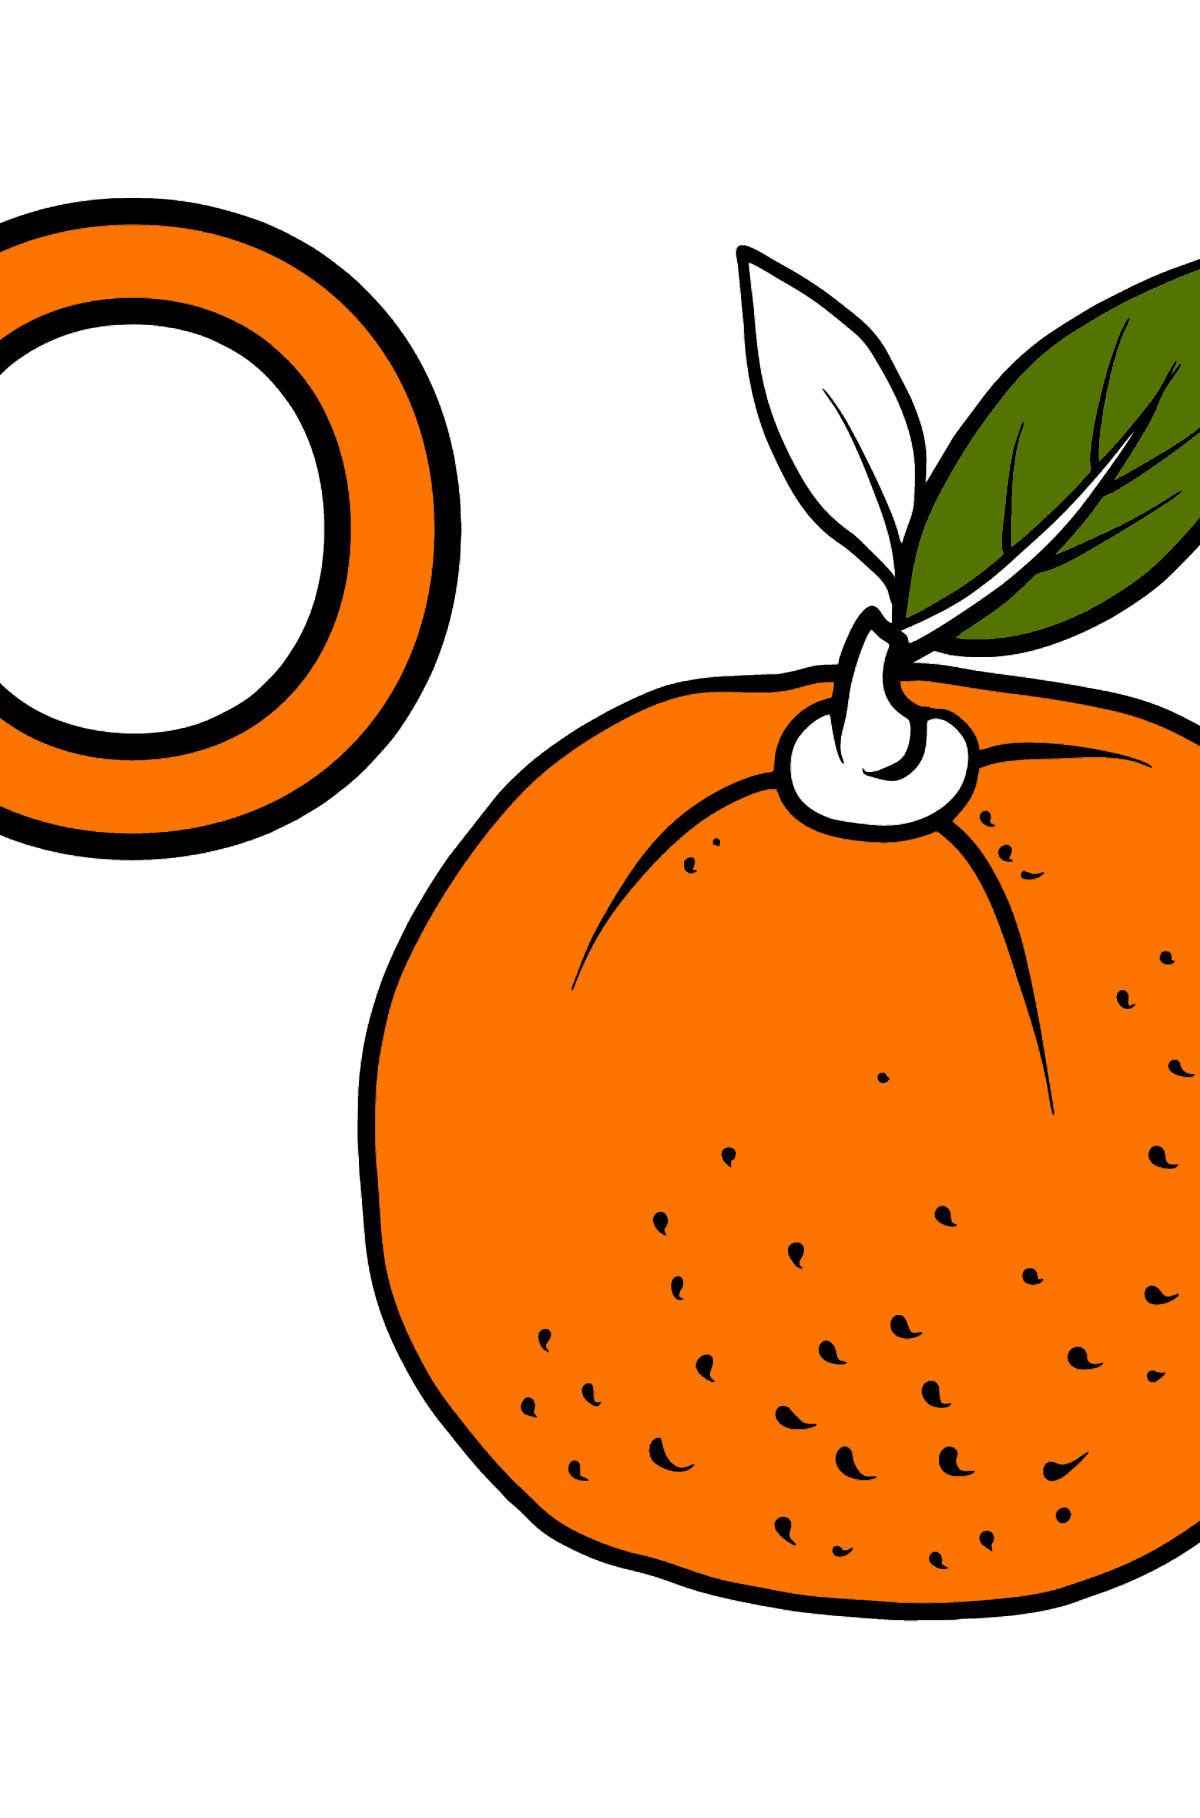 German Letter O coloring pages - ORANGE - Coloring Pages for Kids